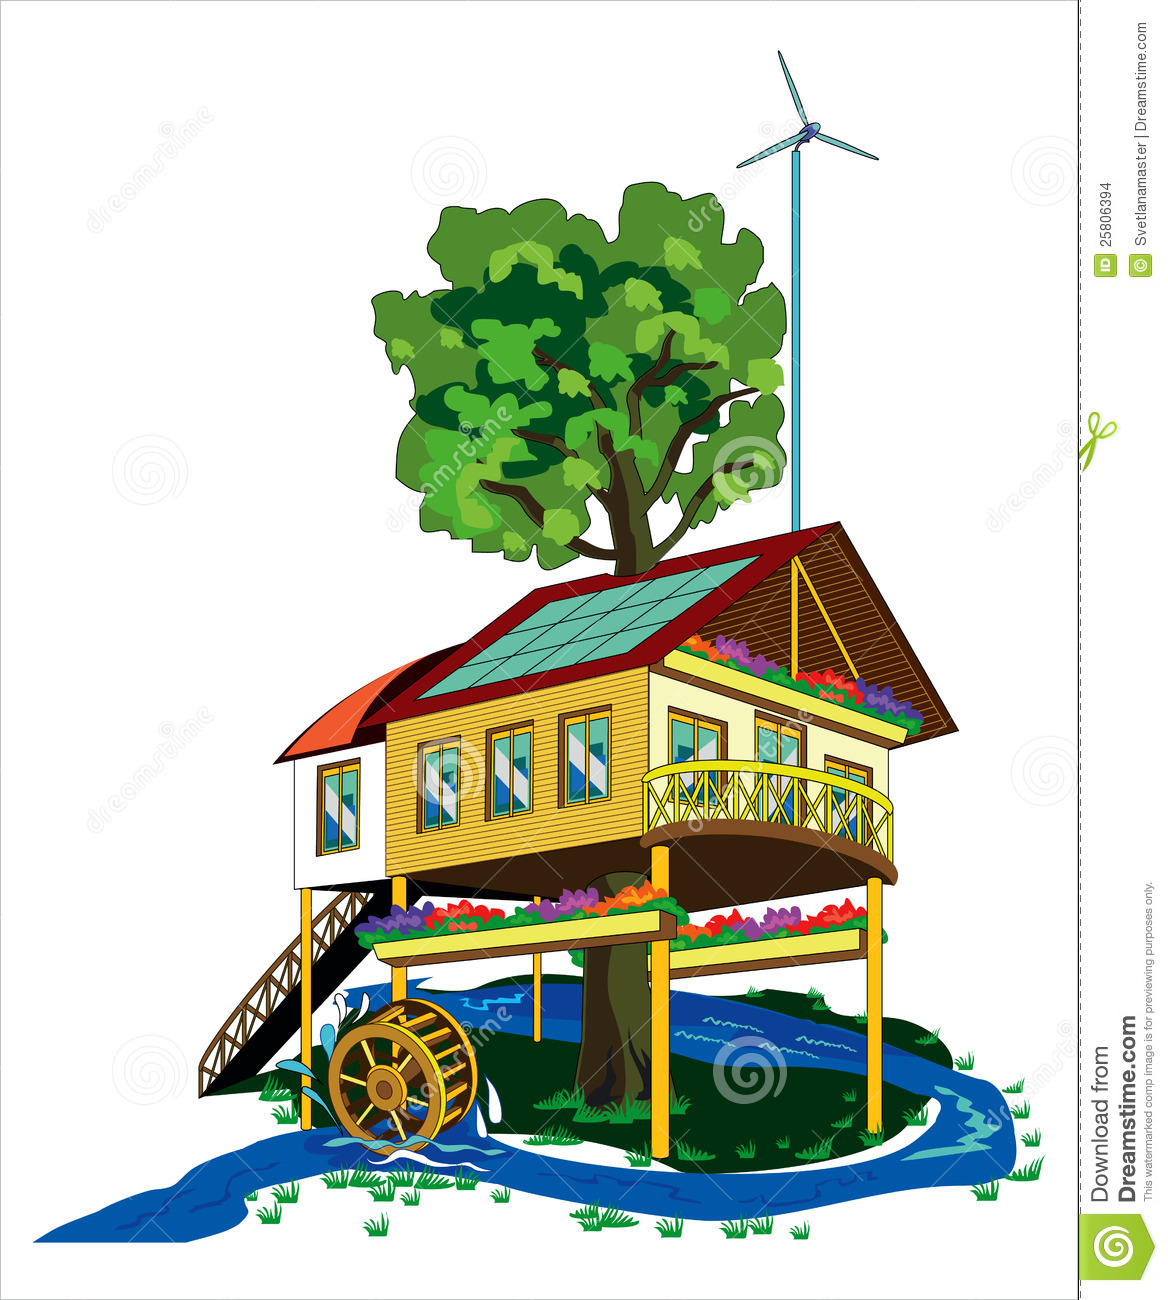 House With Alternative Energy Sources Stock Images - Image: 25806394